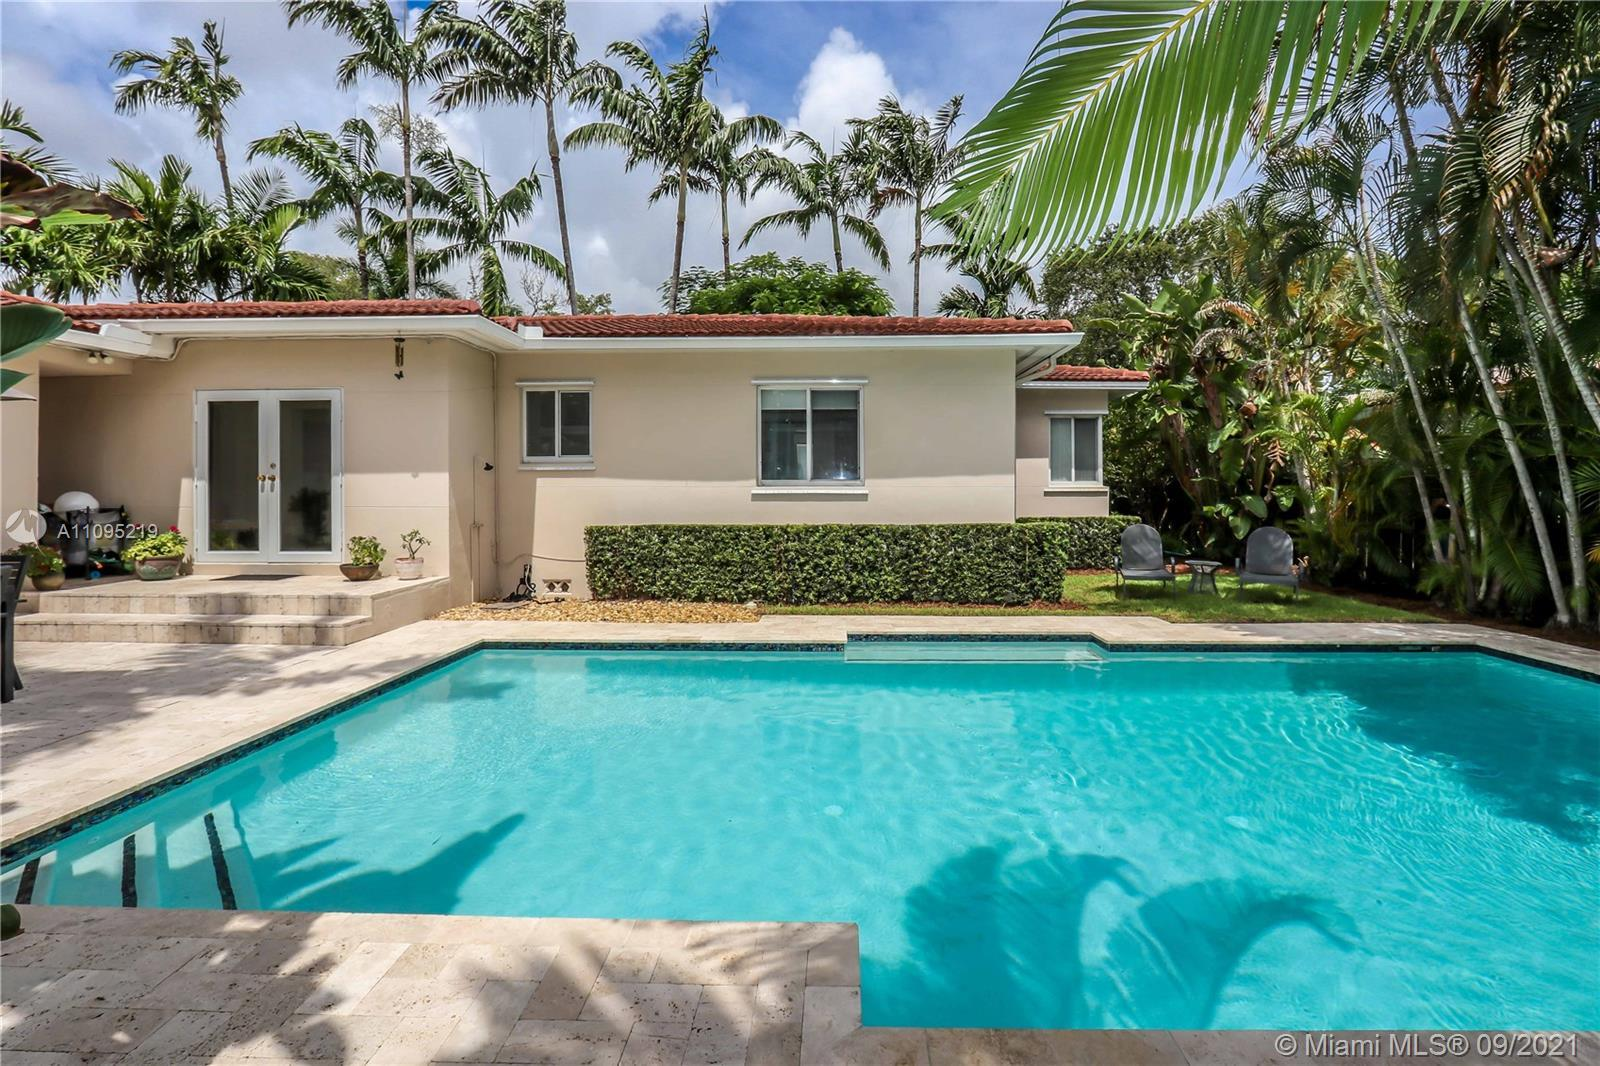 GREAT OPPORTUNITY IN THE HEART OF HOLLYWOOD LAKES! MAIN HOUSE 3BED / 2BATH FORMAL LIVING ROOM AND DI